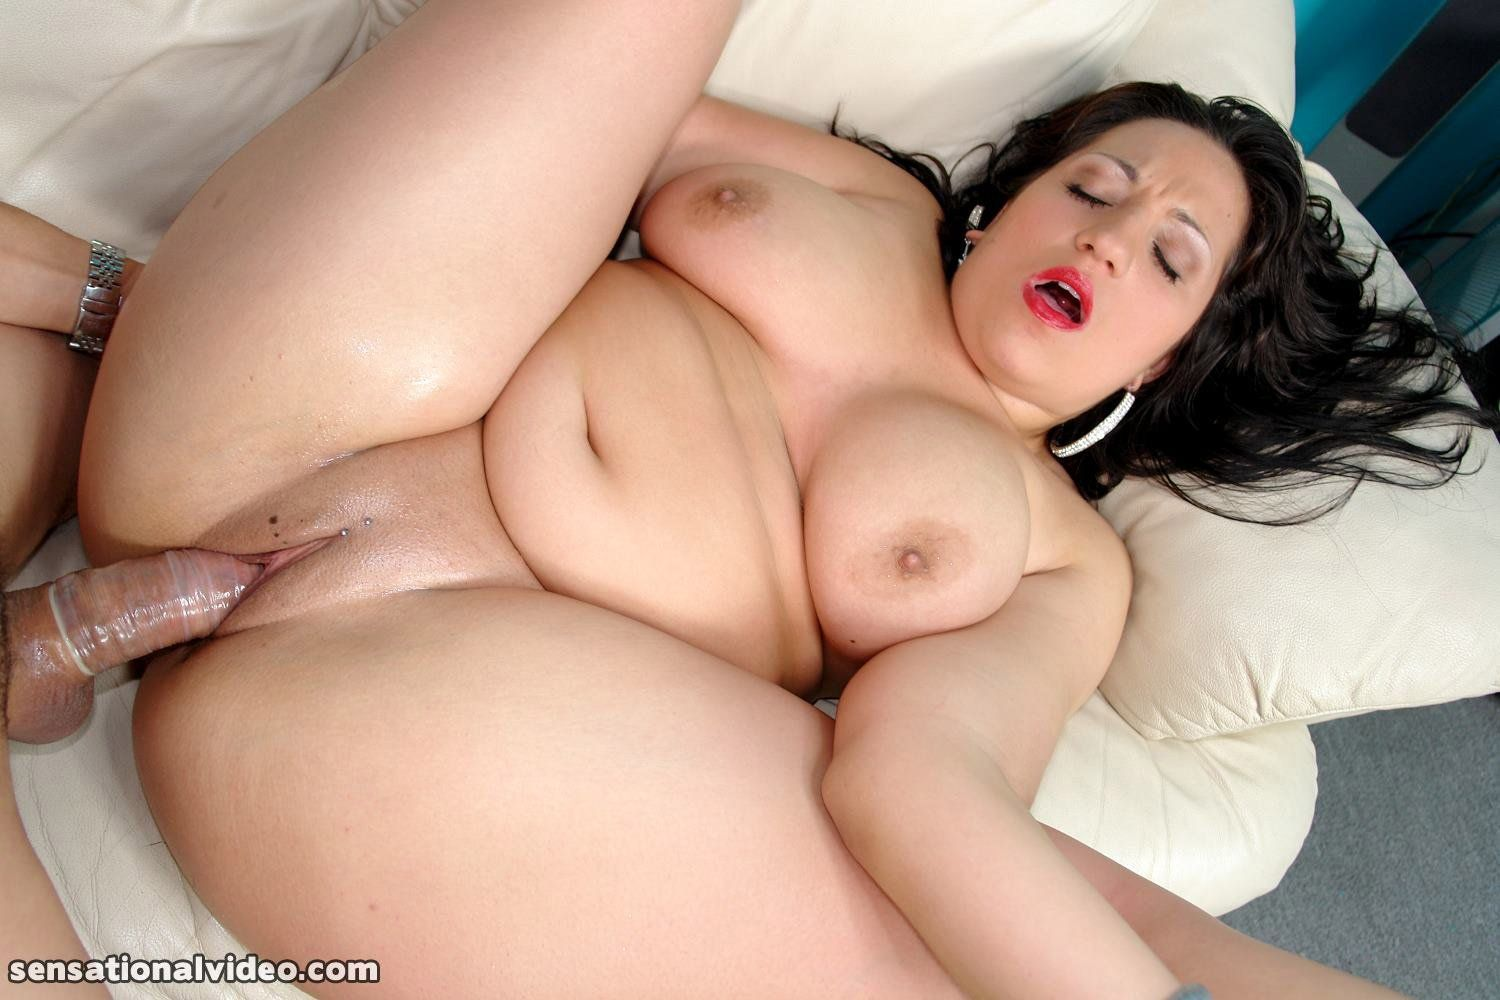 Bbw House Porn Hd bbw daily free pic bbw - nude pics. comments: 4